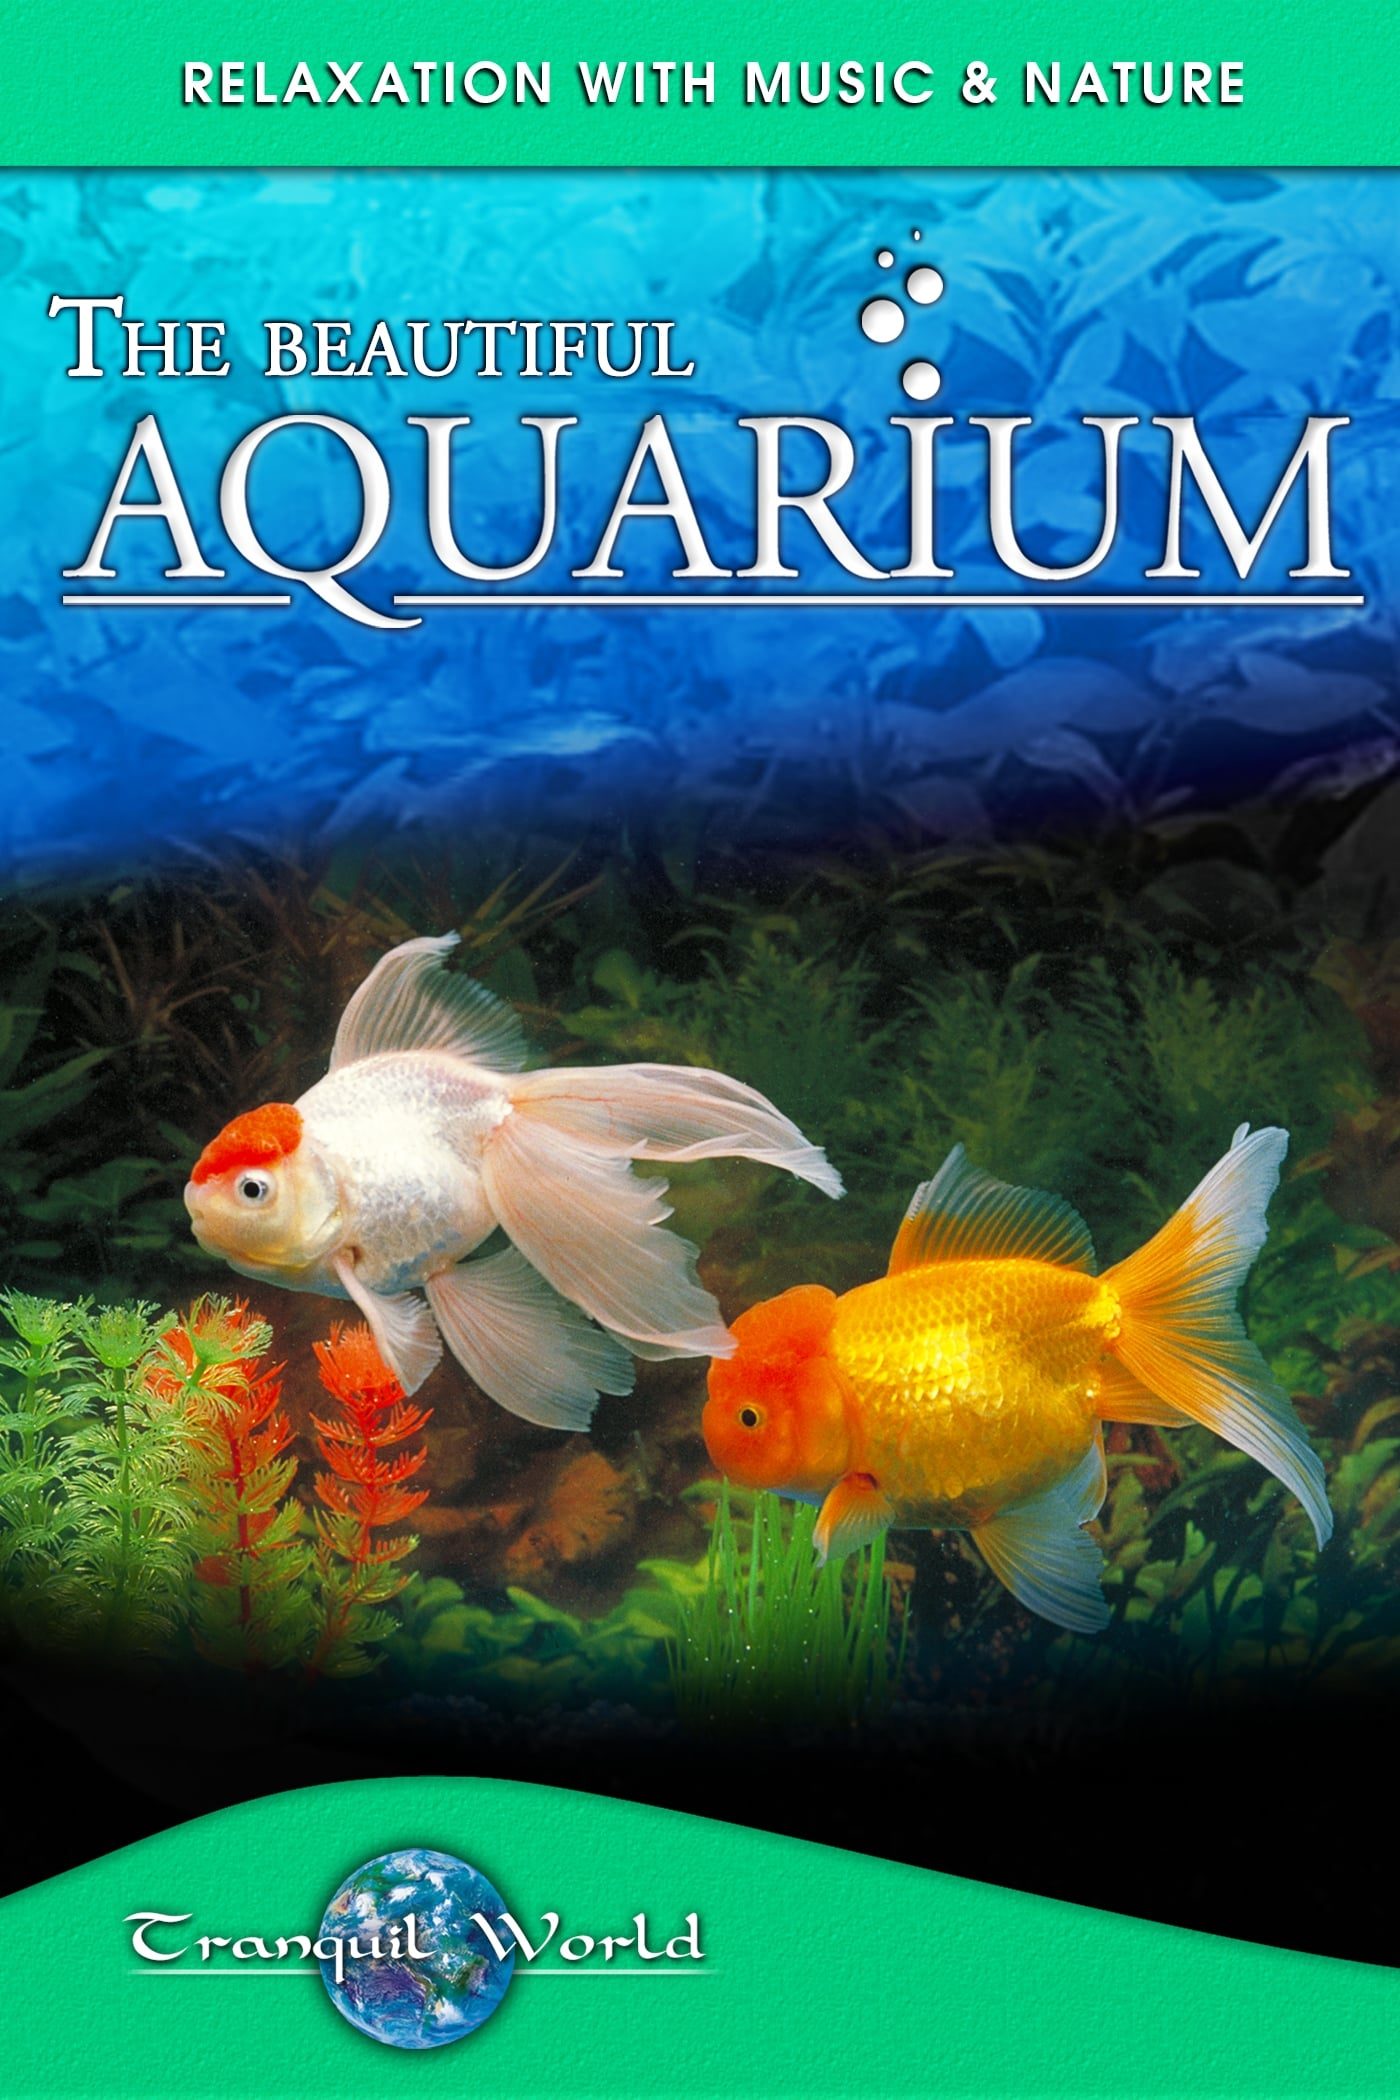 The Beautiful Aquarium: Tranquil World - Relaxation with Music & Nature on FREECABLE TV